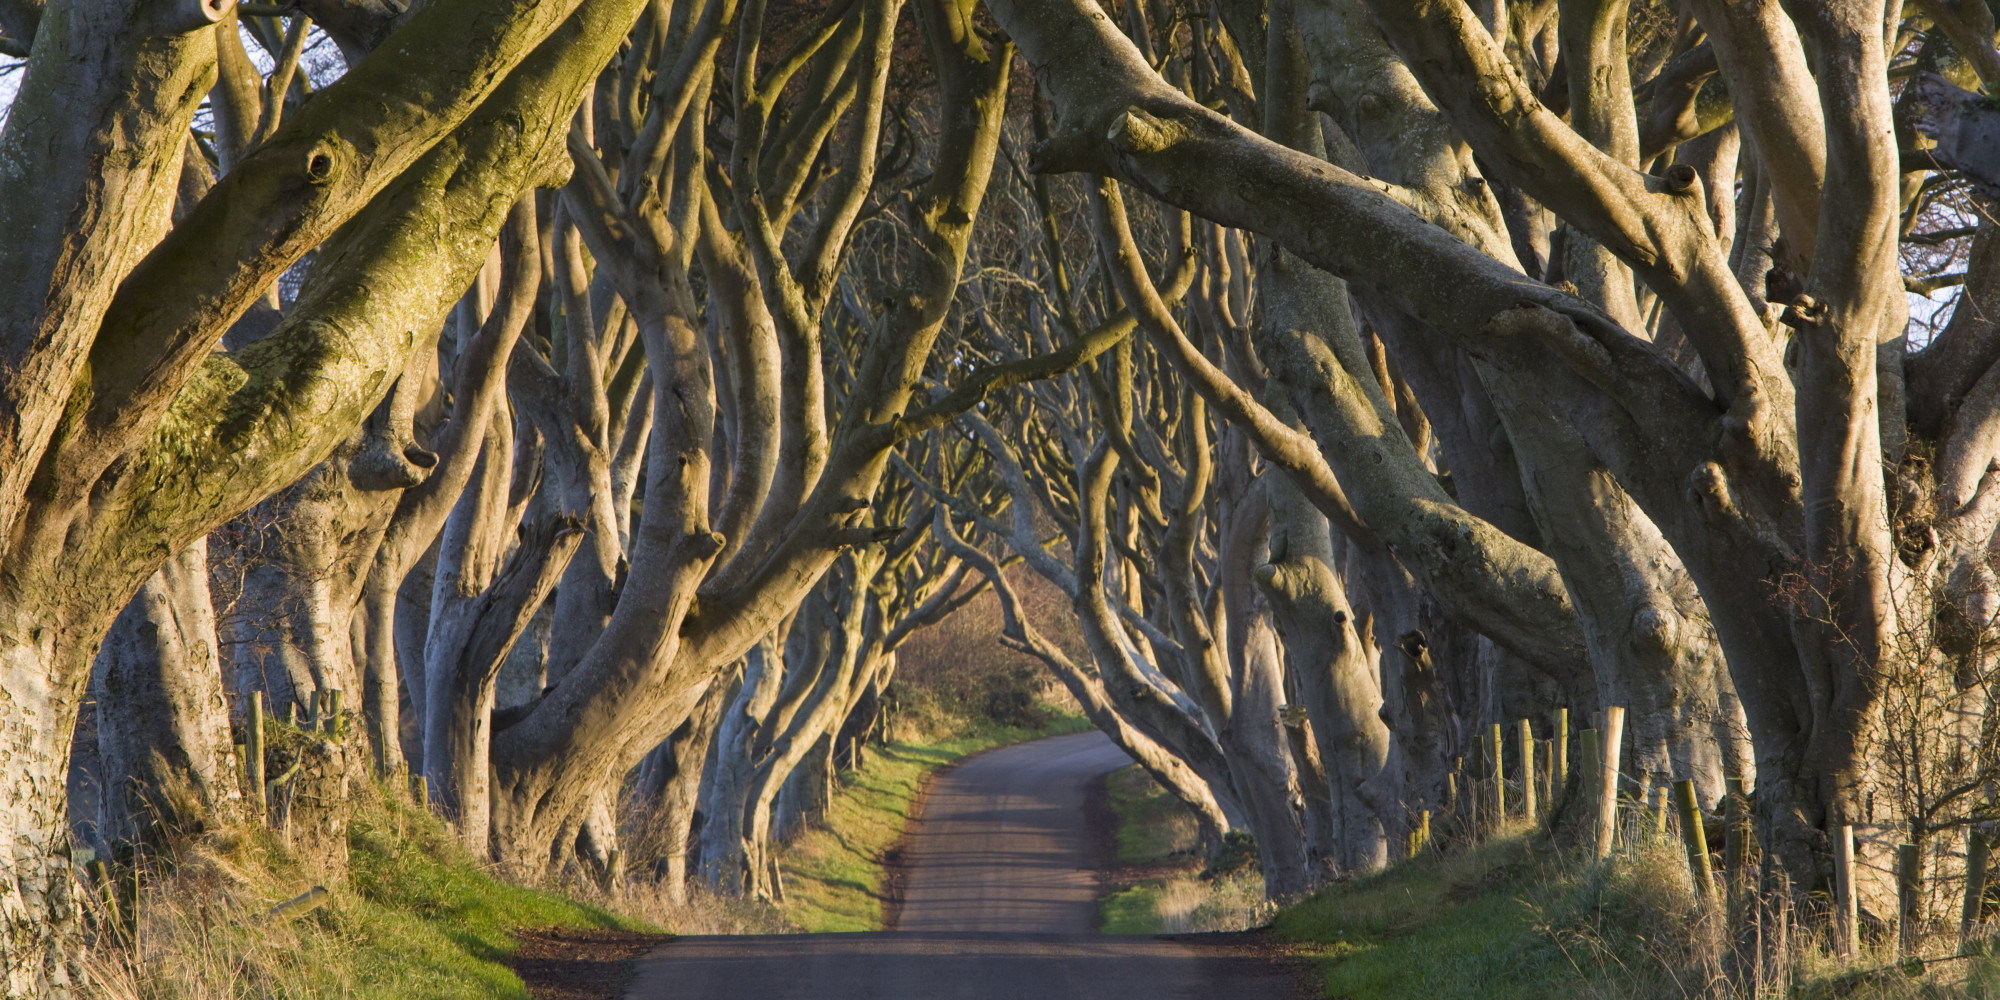 The Dark Hedges - Game of Thrones - J&J Bed and Breakfast